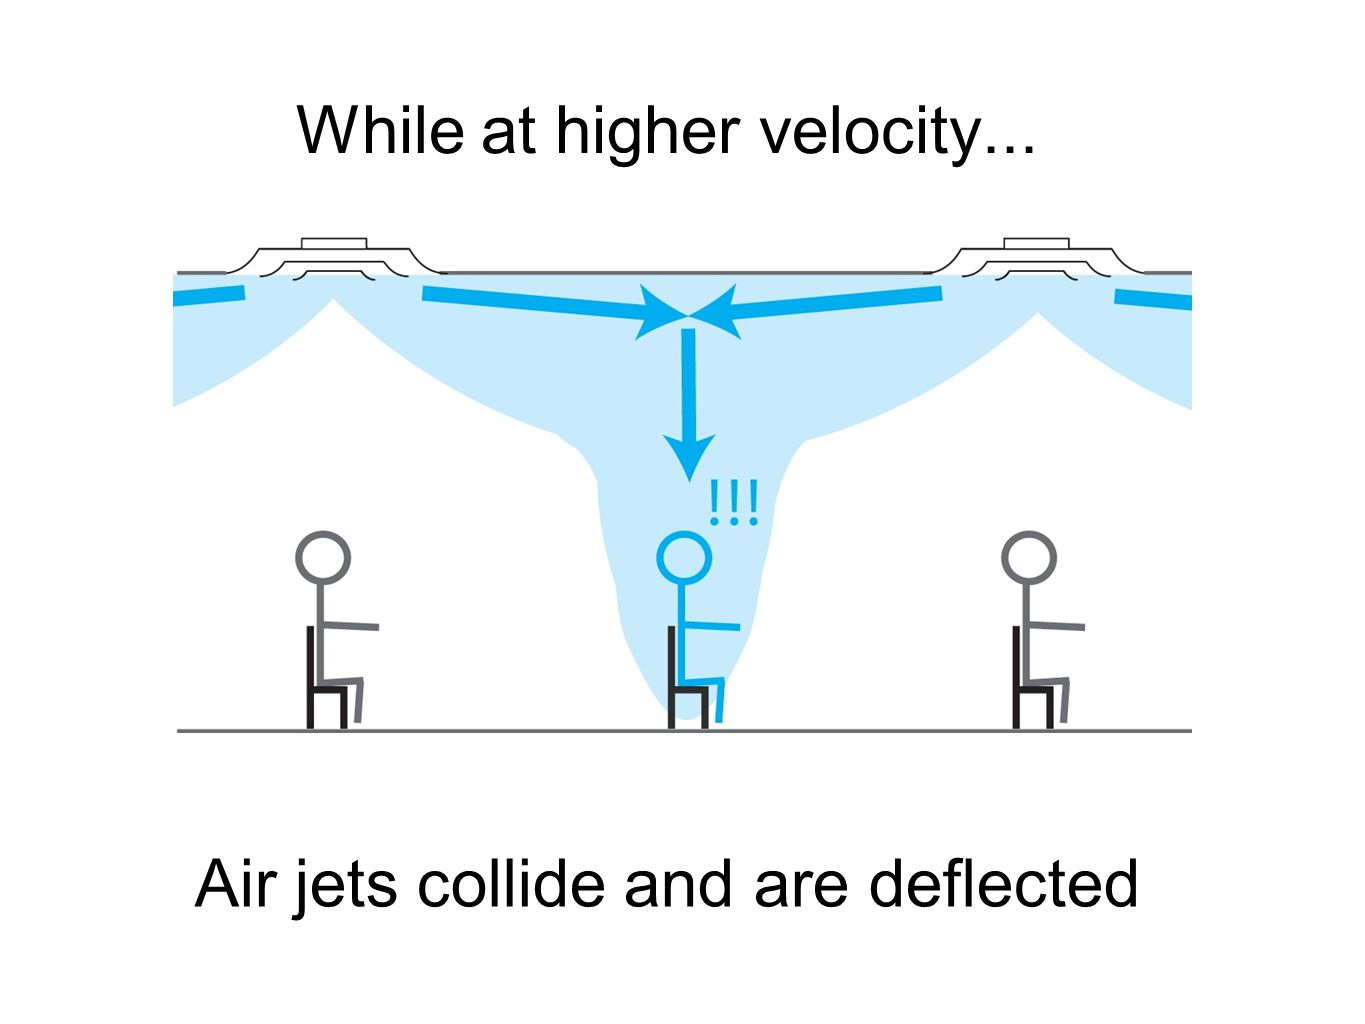 While at higher velocity... Air jets collide and are deflected